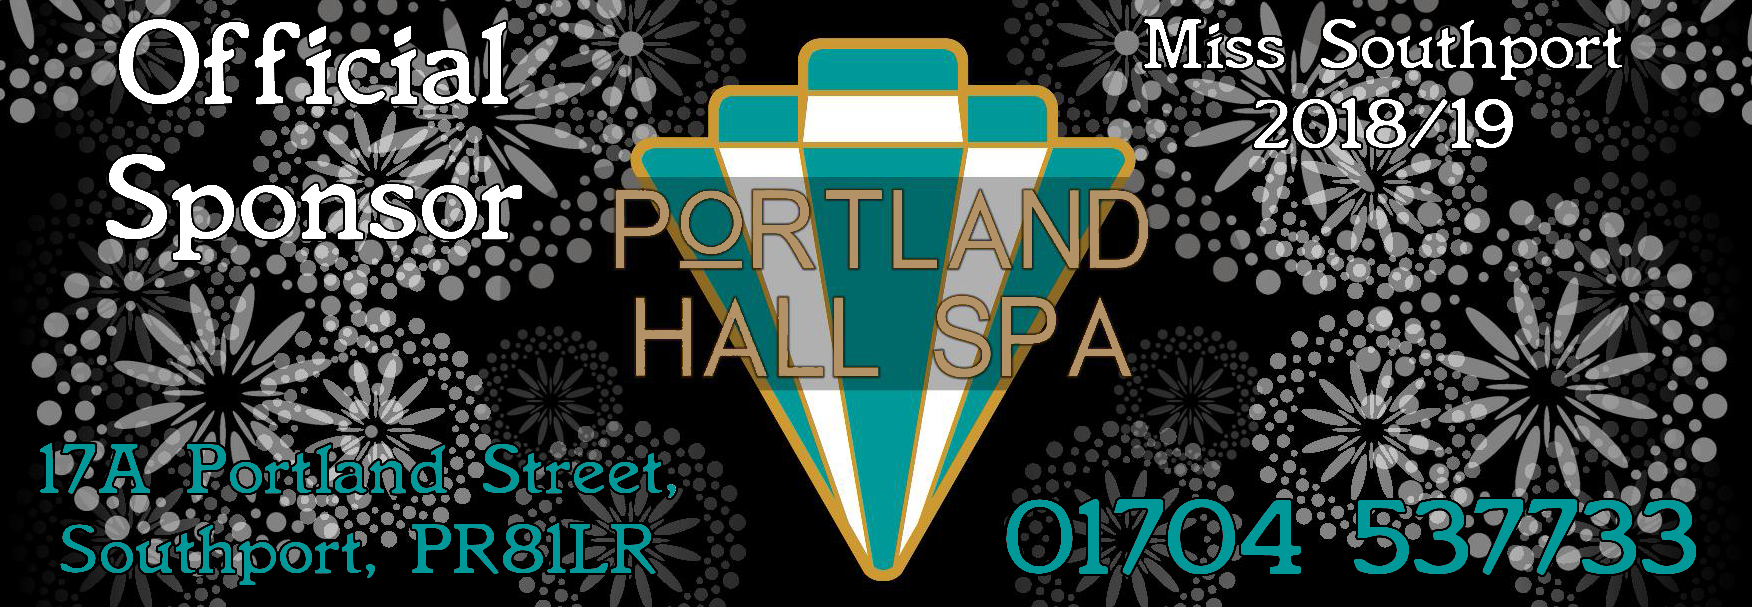 An award-winning, Moroccan themed day spa, Portland Hall Spa are the official main sponsor of Miss Southport 2018/19.